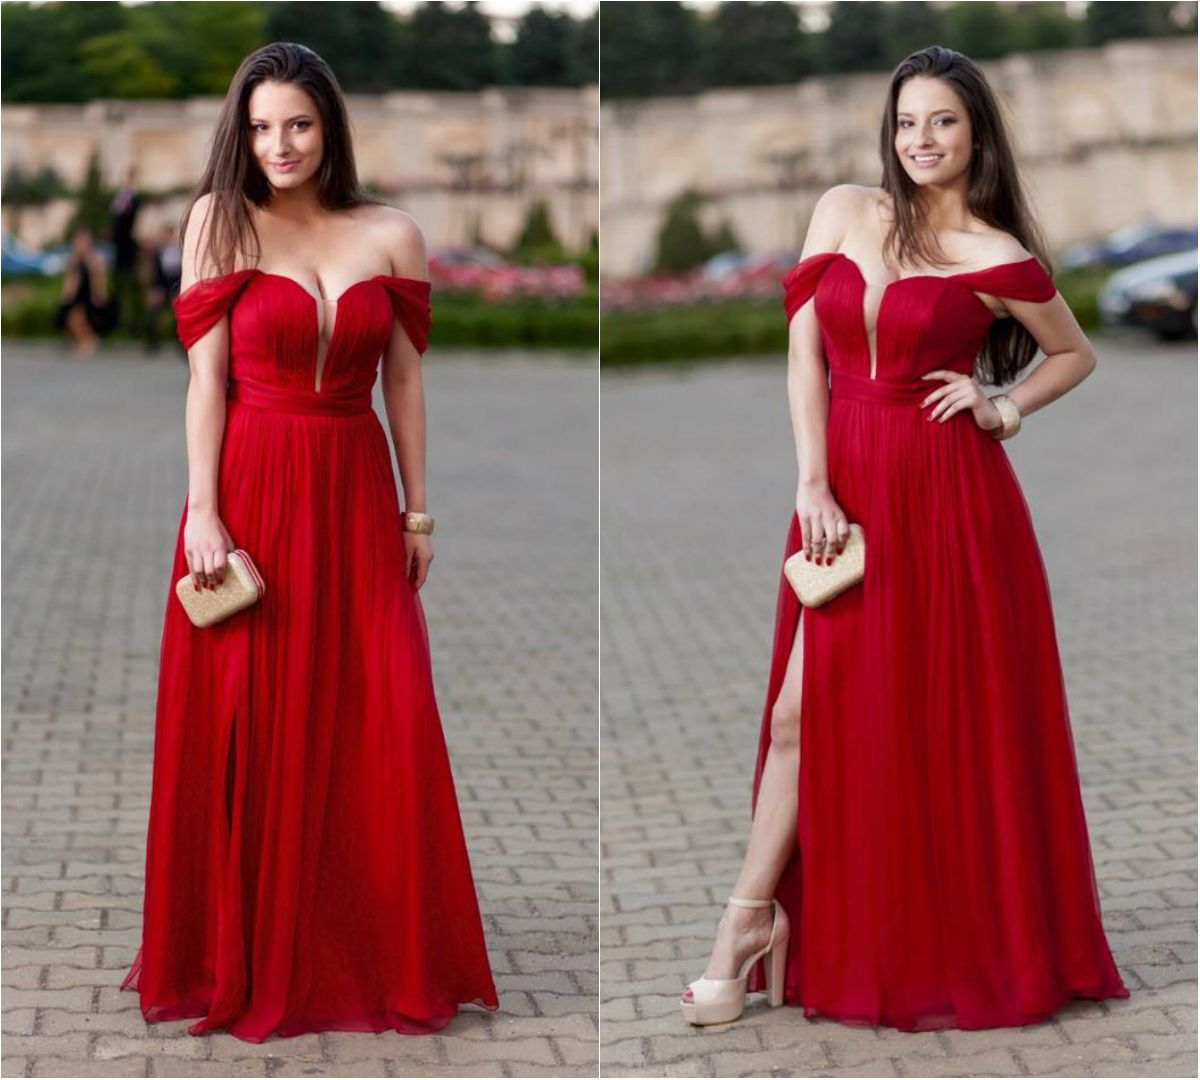 Ultra-glamorous #CRISTALLINI evening gown, perfect for a red carpet appearance! Our gorgeous client, Denisa, looked absolutely breathtaking at prom in this stunning pure silk red dress . #cristallini #cristallinidresses #prom #promdress #promstyle #redgown #pageant #beauty #elegance #happyclients #eveningdresses #eveningstyle #redgown #pageantstyle #puresilk #luxurystyle #luxury #dresses #fashion #fashionista #style #fashionstyle #fashiondesigner #romaniandesigner